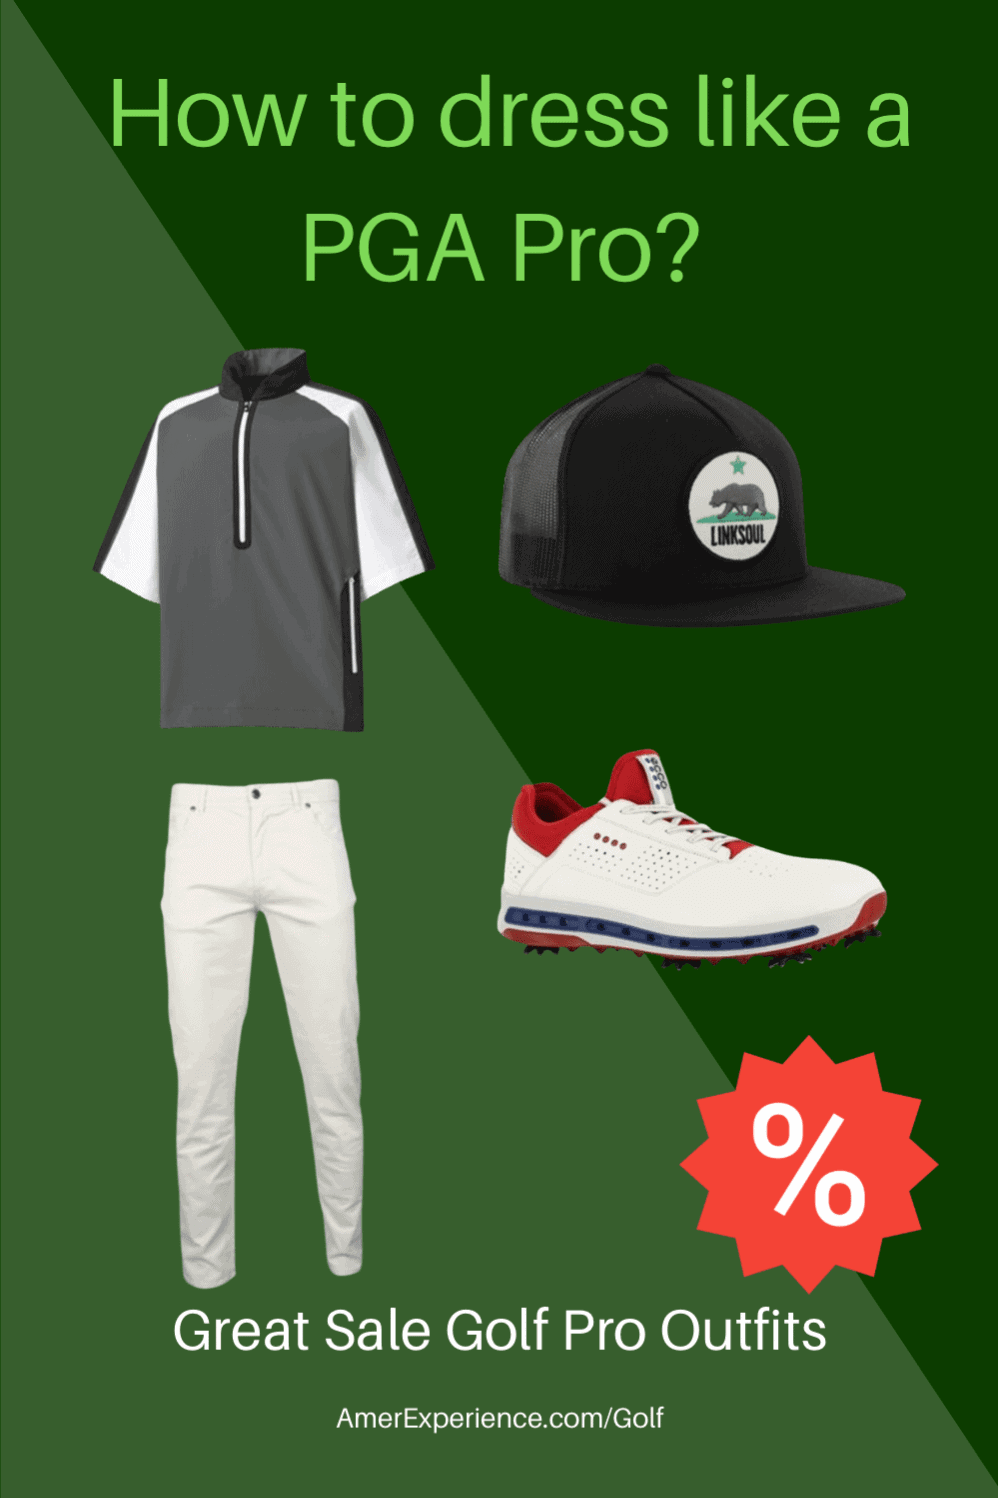 Where to buy the PGA Pro clothes?